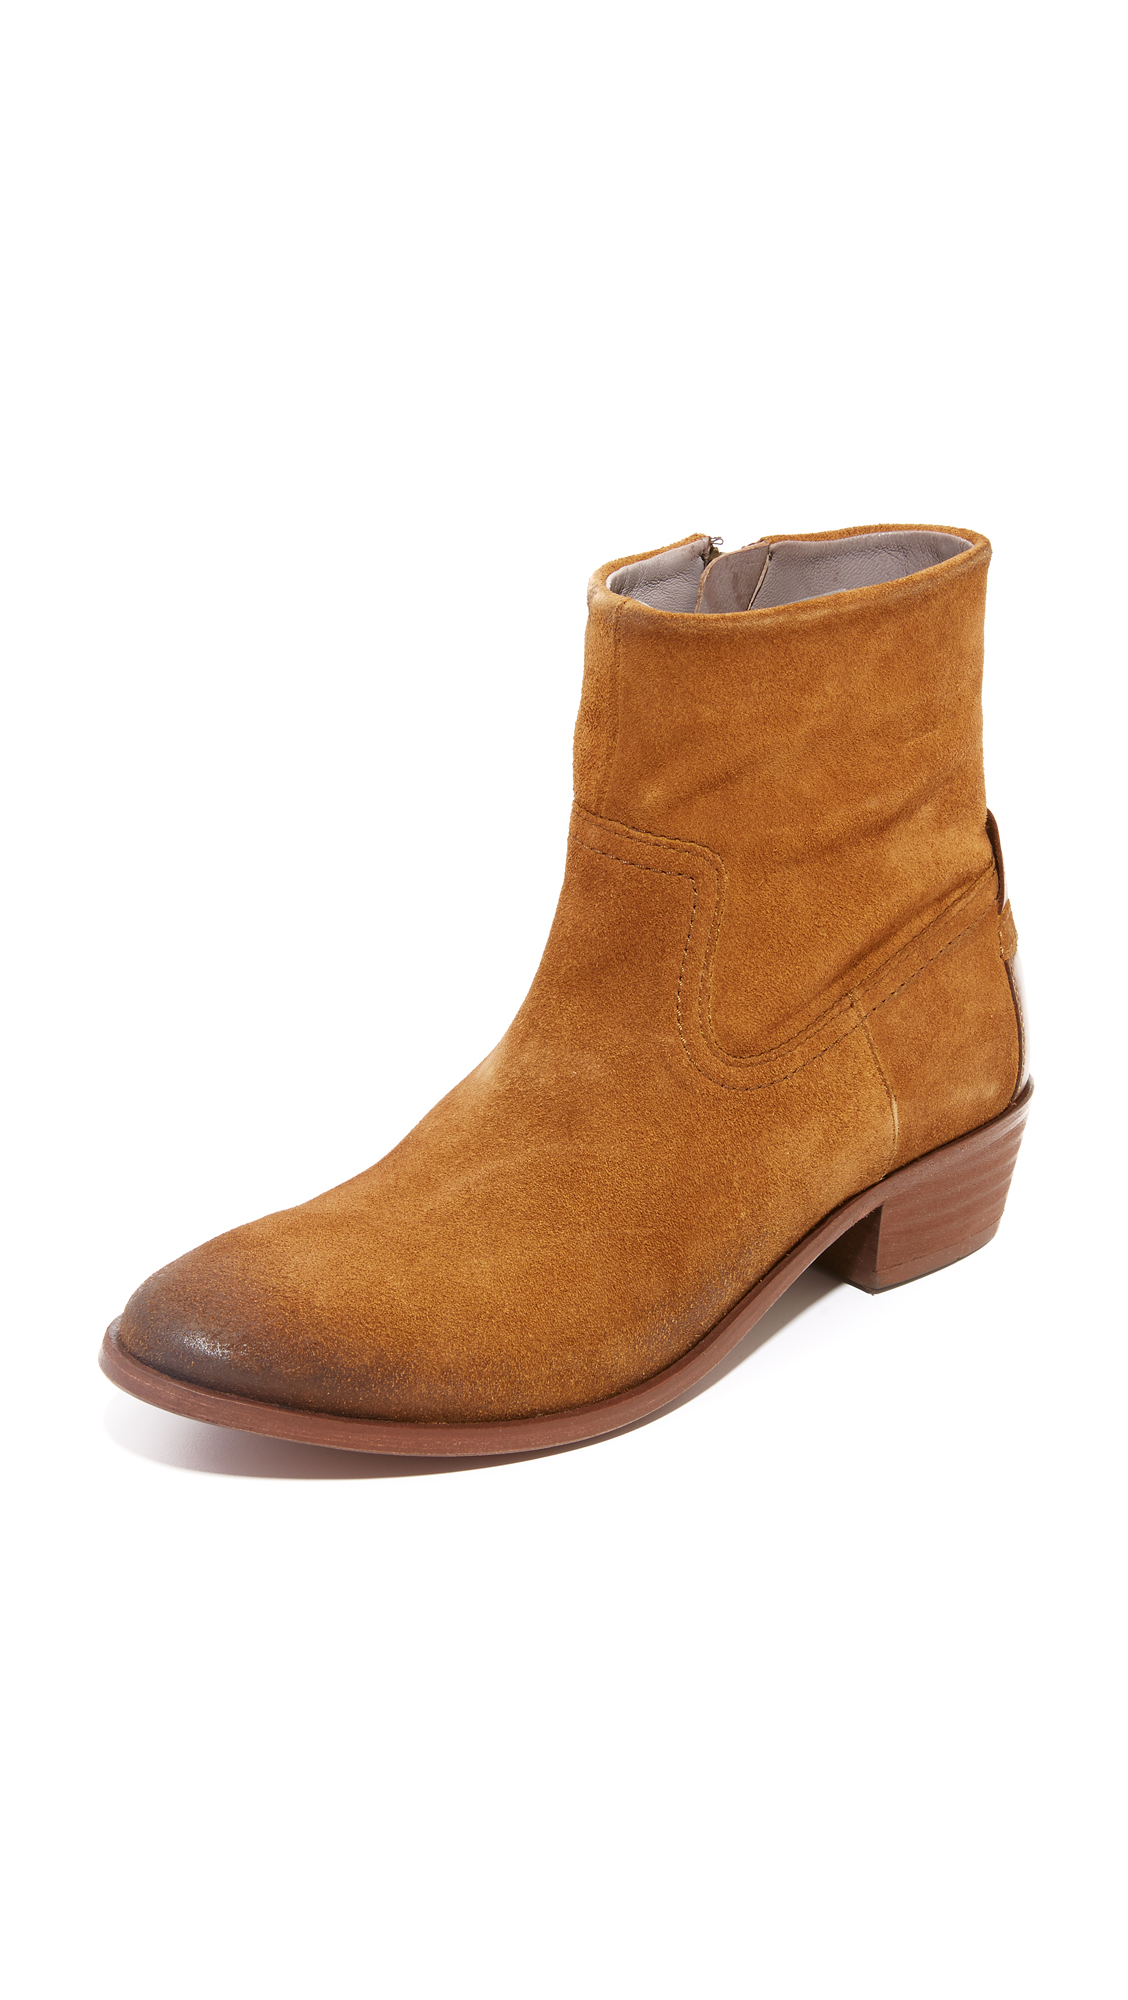 H By Hudson Laya Booties - Tan